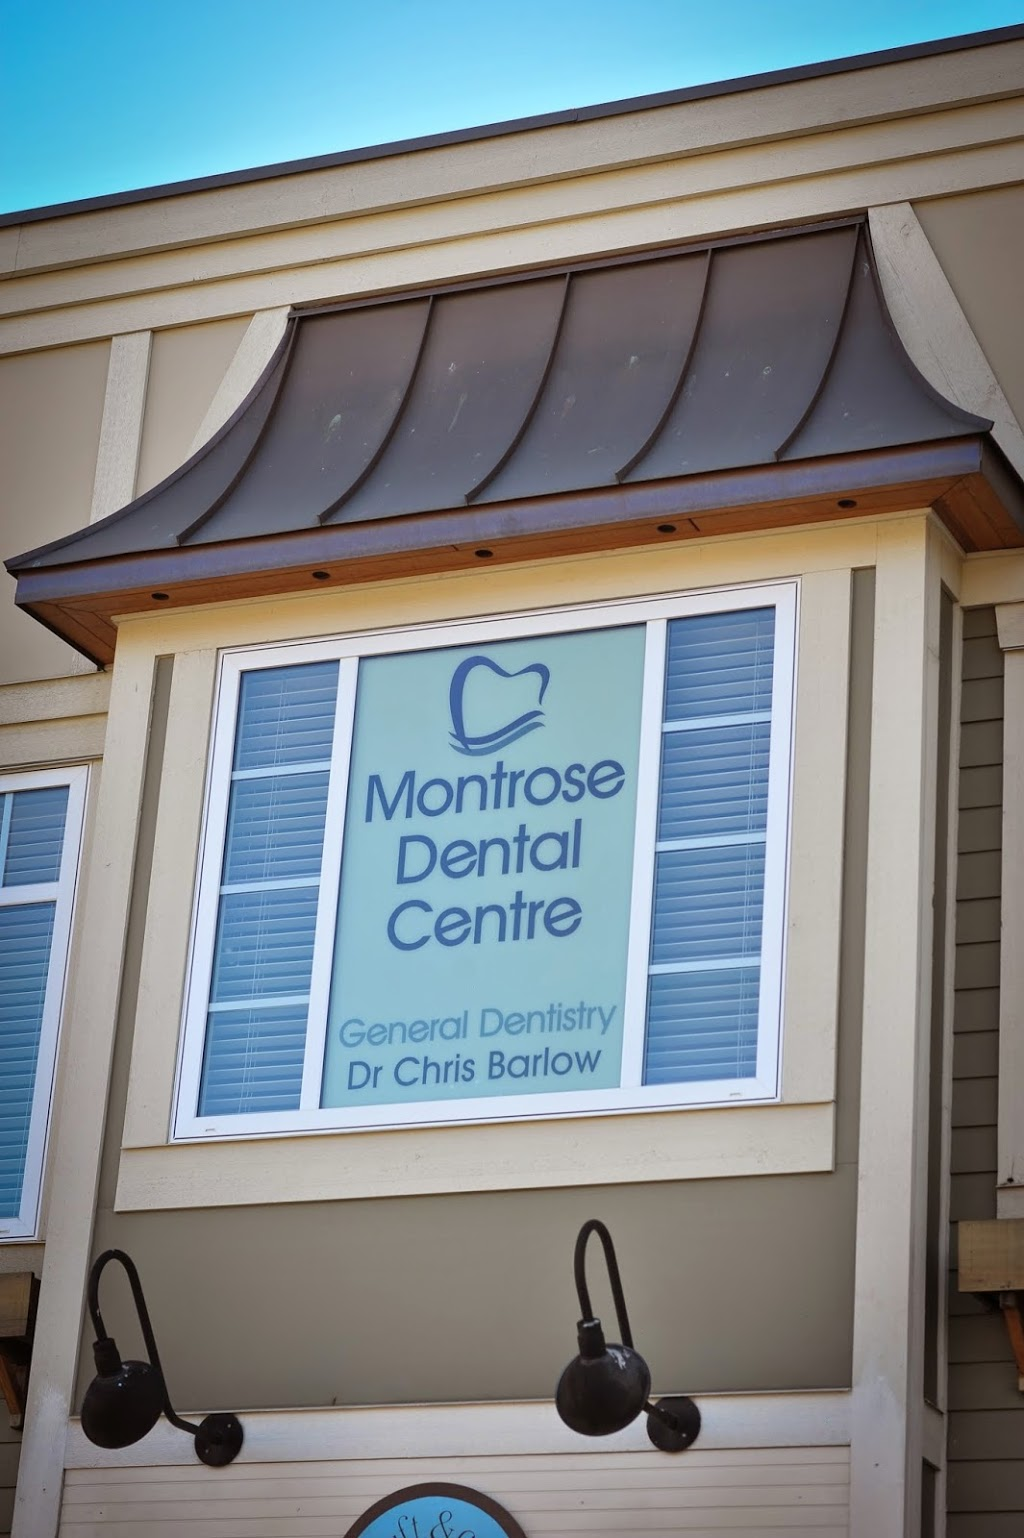 Barlow Chris Dr | dentist | Suite 203-2636 Montrose Ave, Abbotsford, BC V2S 3T6, Canada | 6048535677 OR +1 604-853-5677